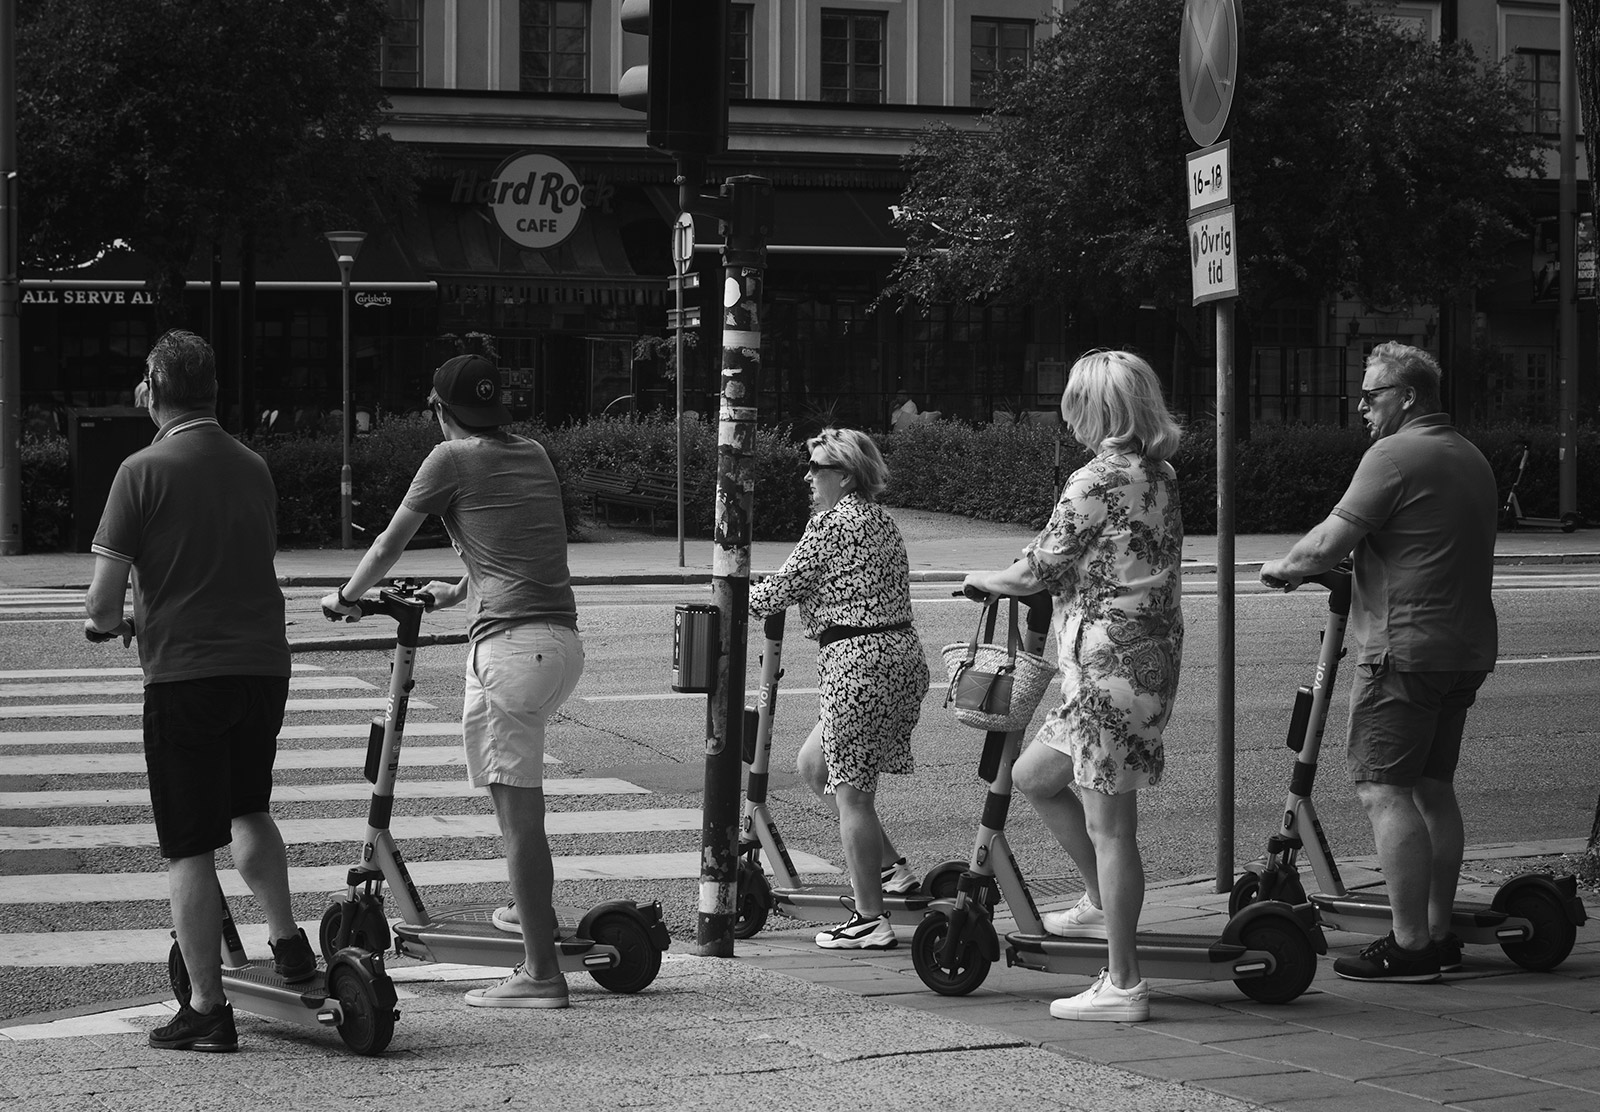 Group of people on scooter at a crossing